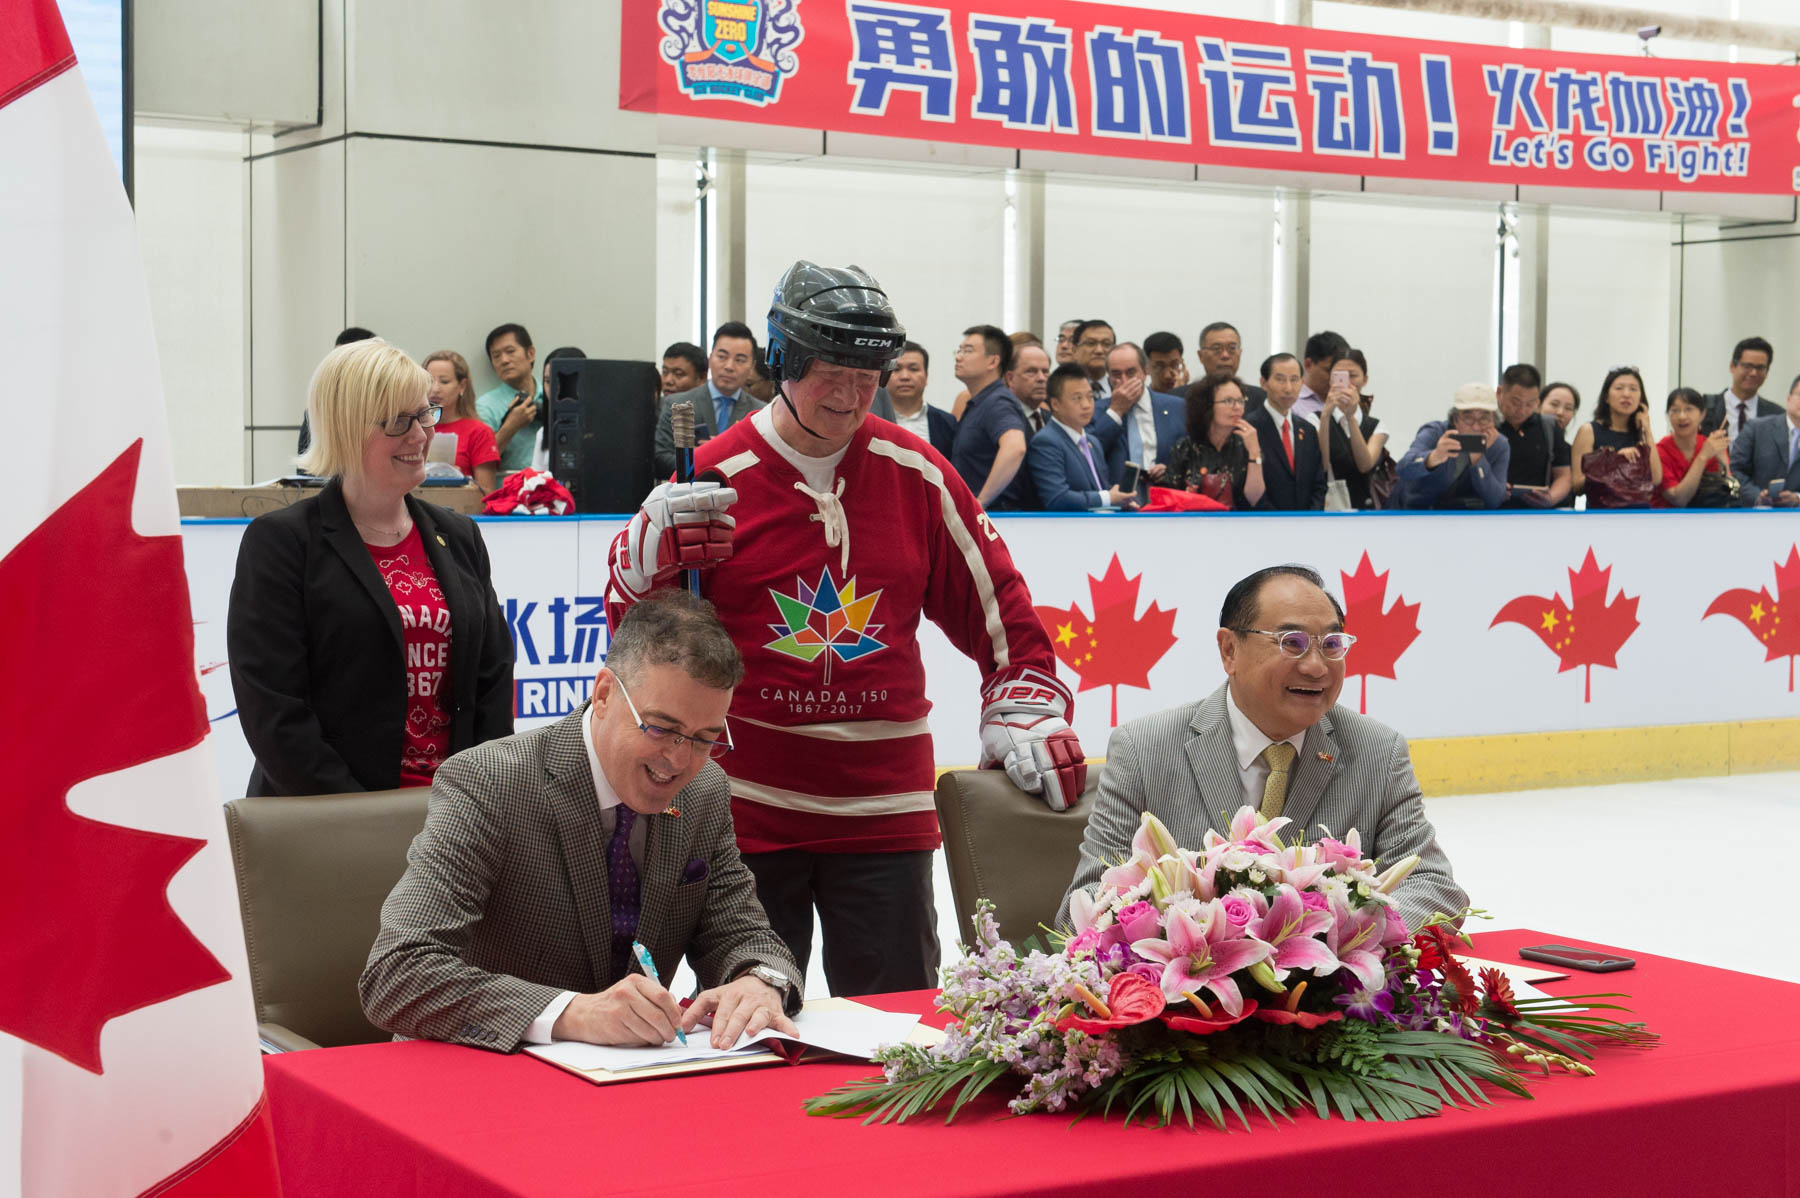 Afterwards, the Governor General and Minister Qualtrough witnessed the signing of four agreements that will highlight Canada's potential to help grow hockey in China.